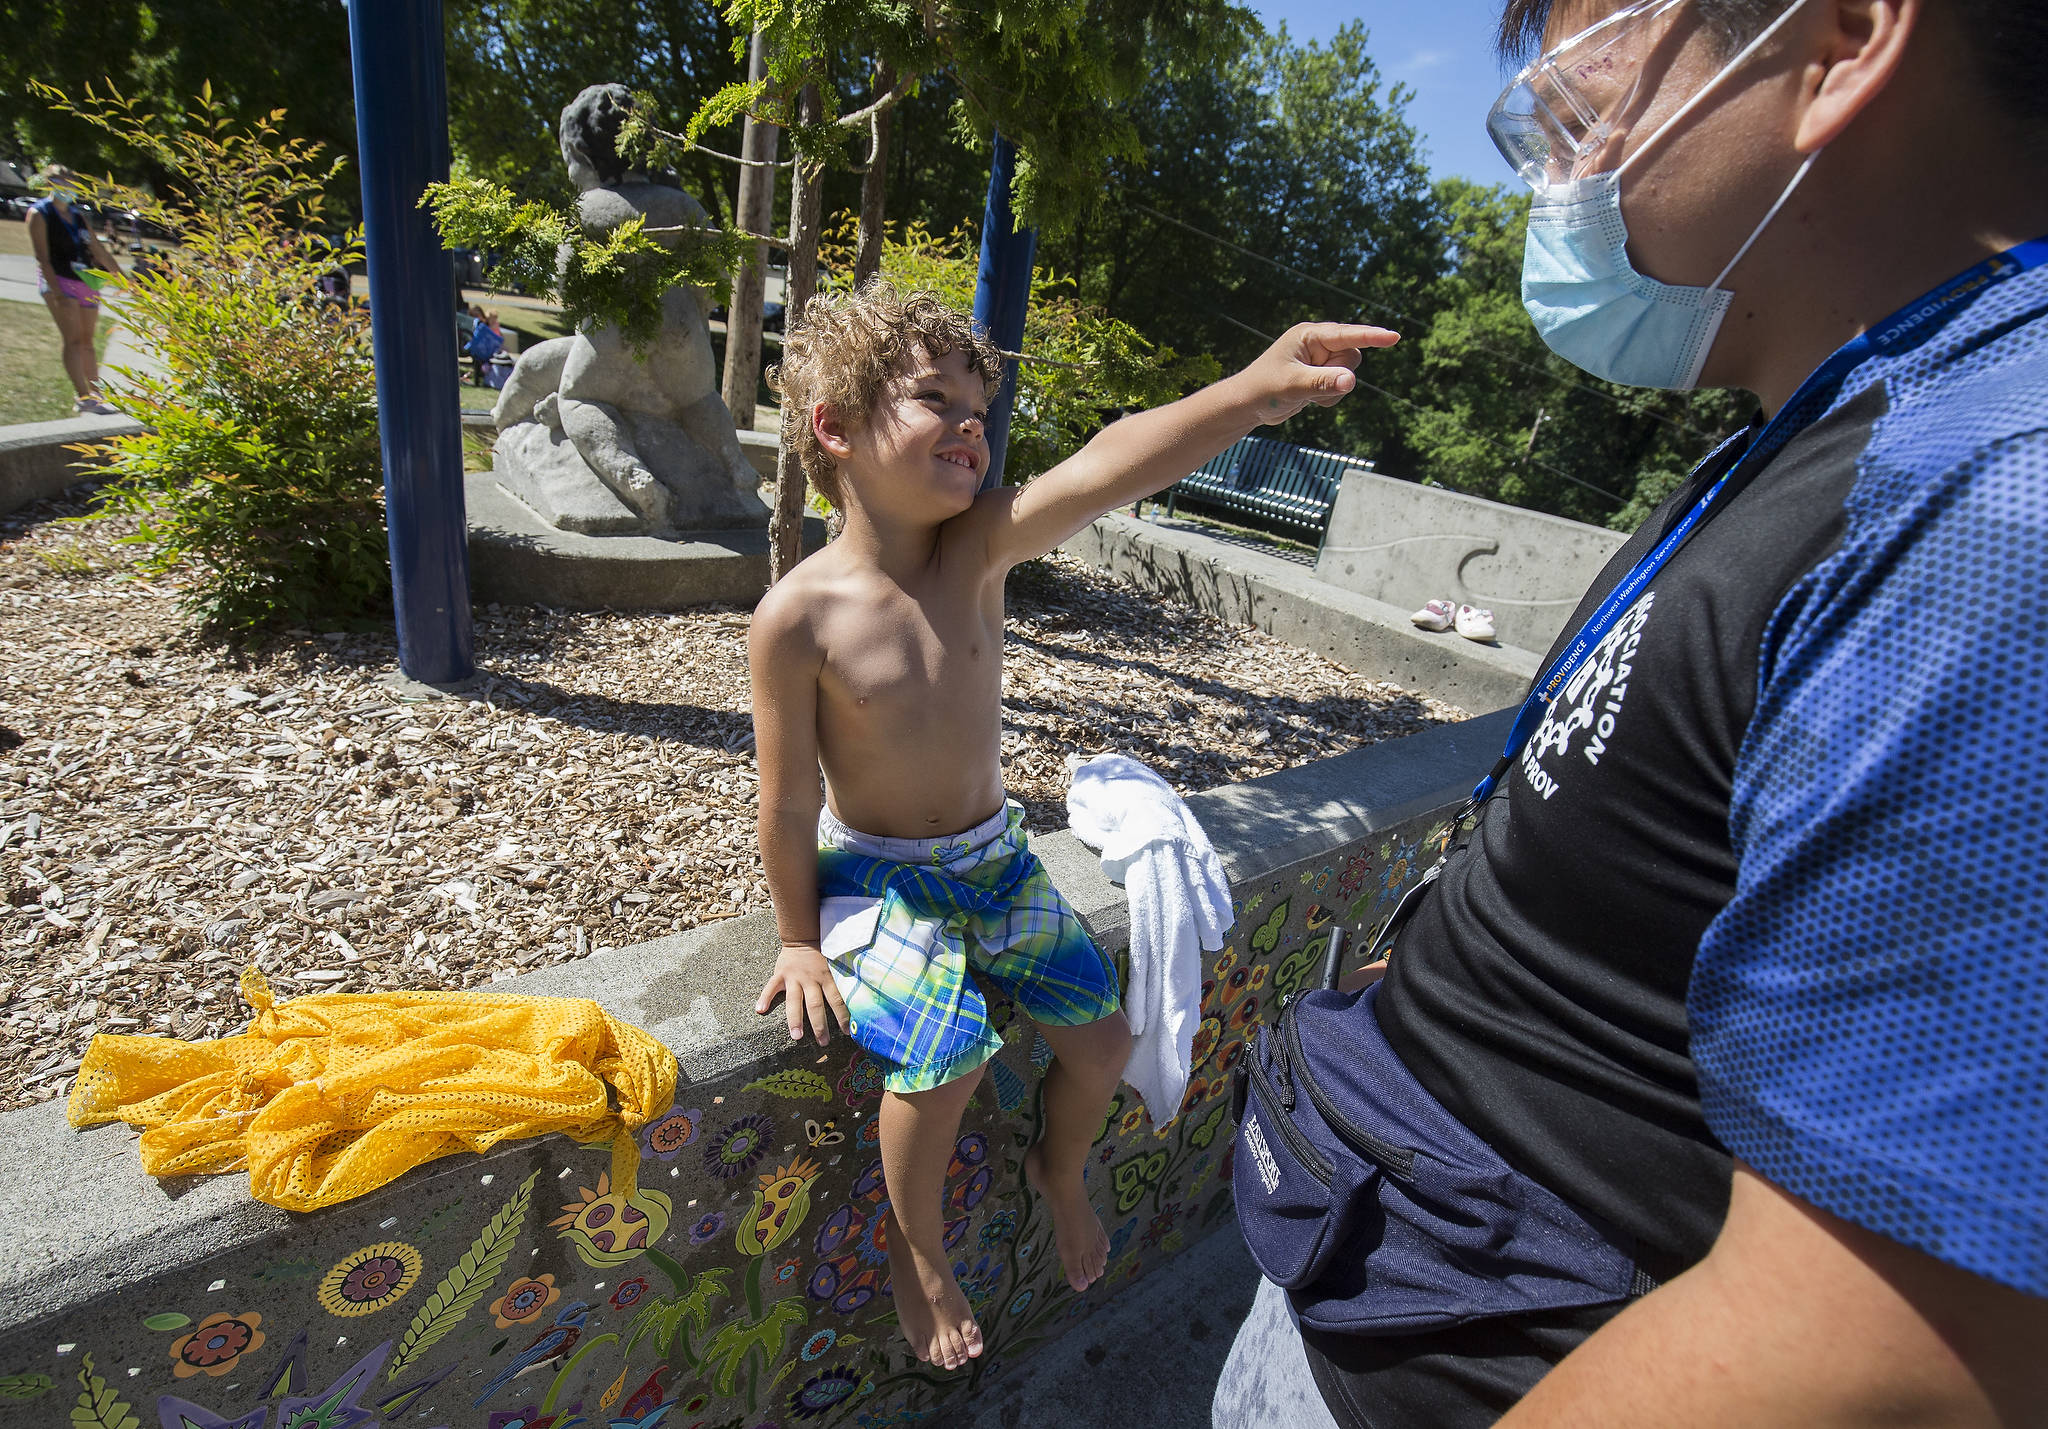 """Soren Williams, 4, points at Quang Pham and says, """"I love you,"""" after drying off from playing in the water at Forest Park in Everett. (Andy Bronson / The Herald)"""